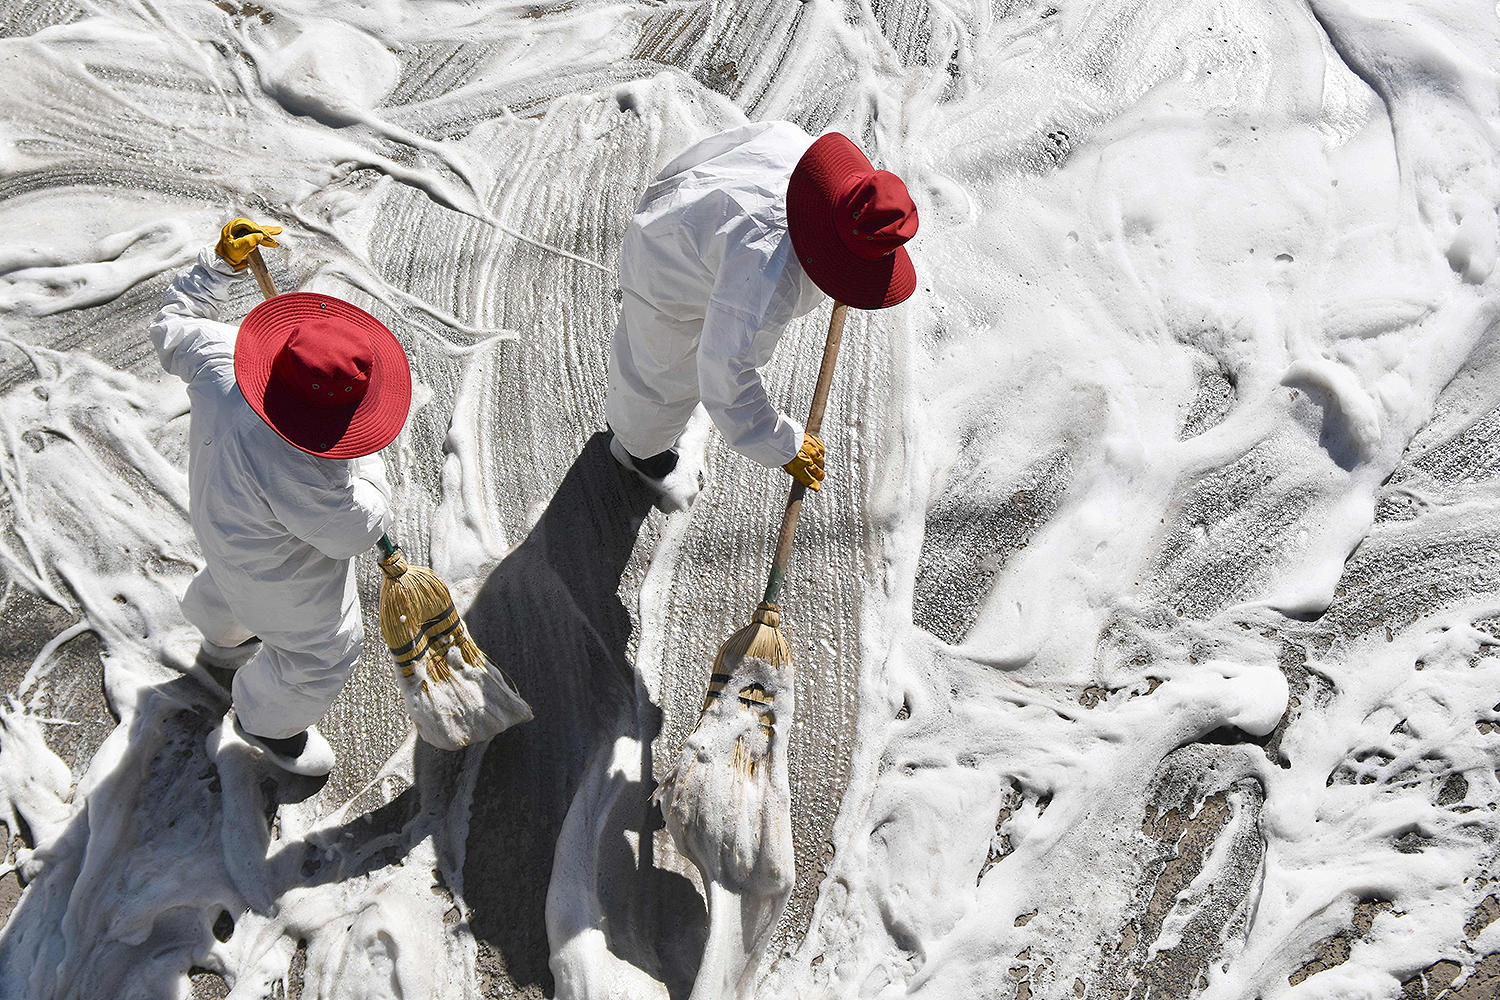 Municipal workers in Arequipa, the second-largest city in Peru, scrub the streets surrounding a market on April 15—a sanitary measure to fight the spread of the coronavirus. DIEGO RAMOS/AFP via Getty Images